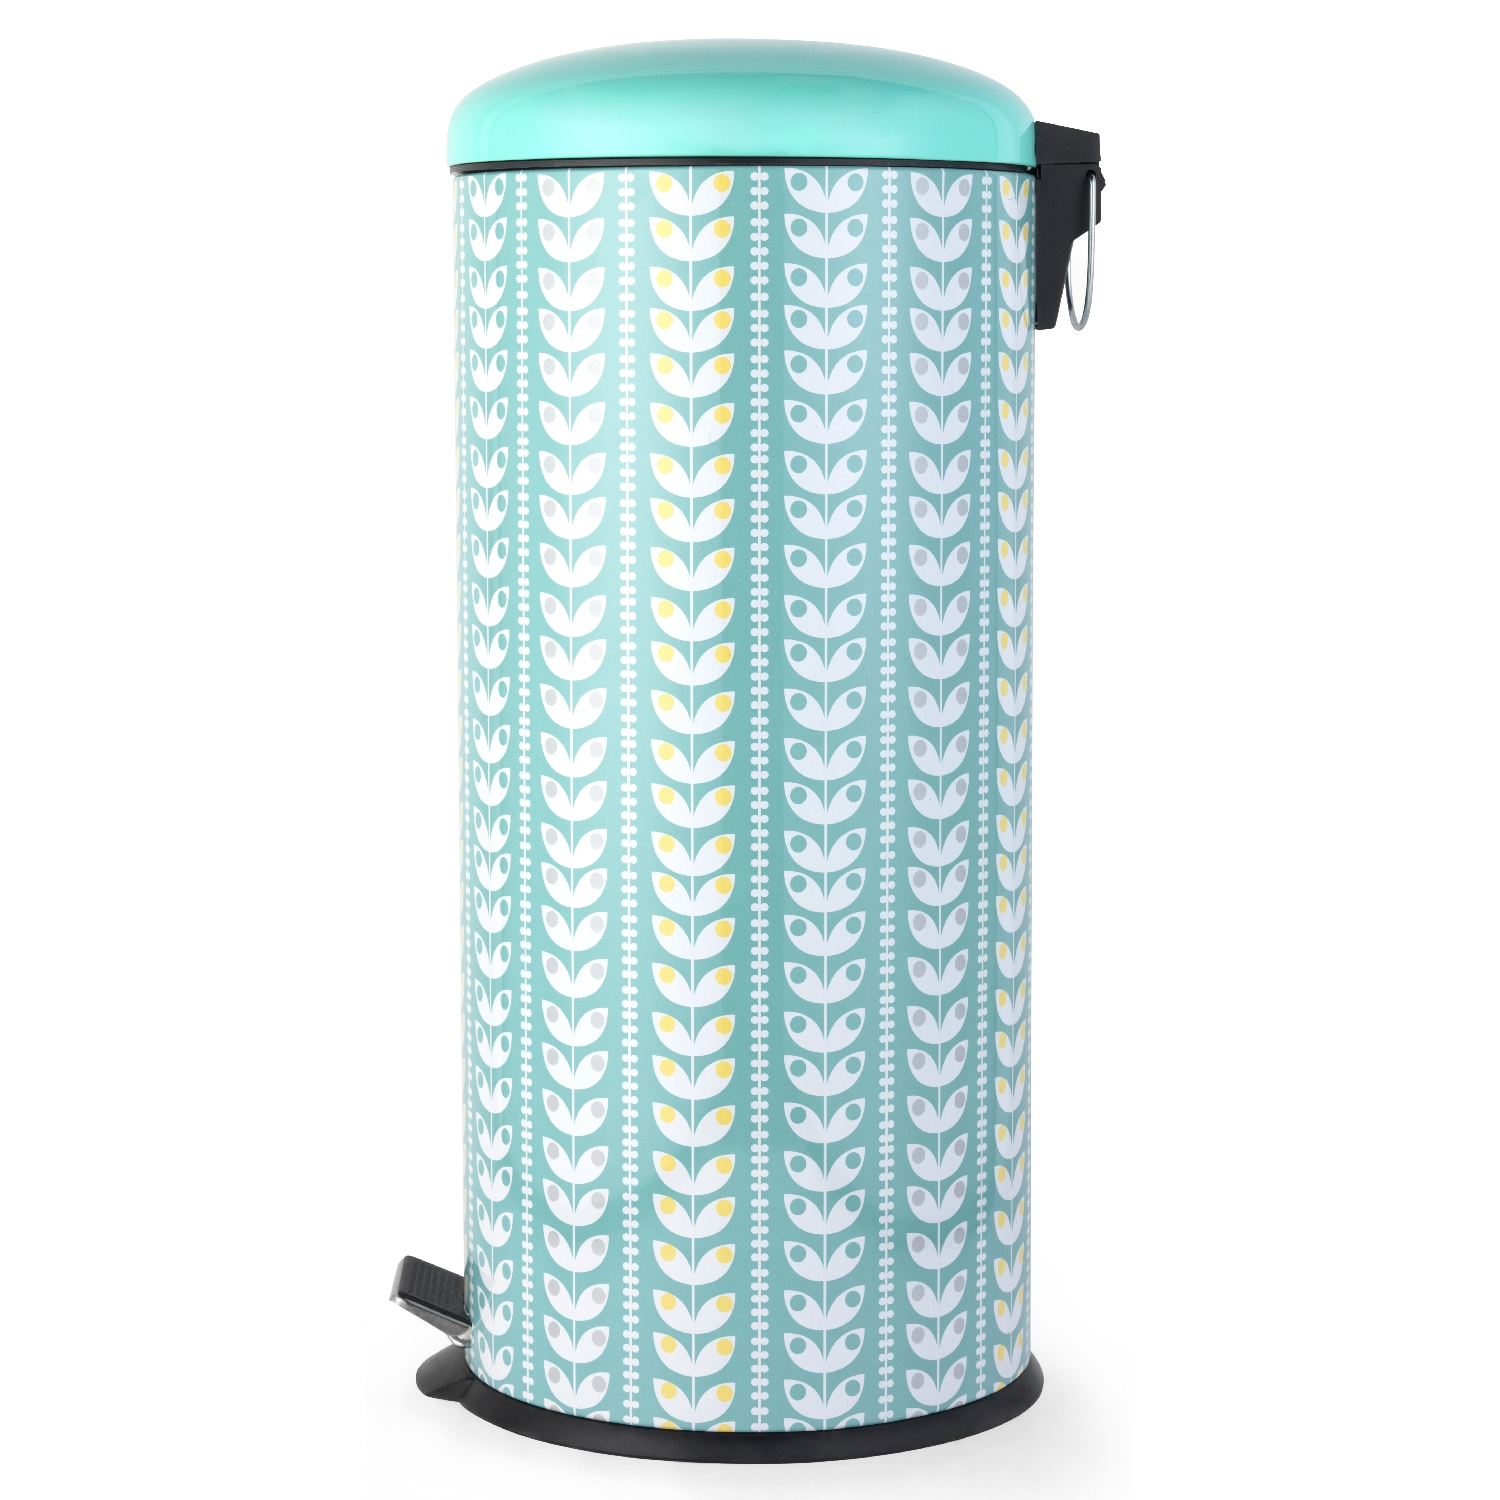 Salter Retro Leaf 30litre Turquoise Pedal Bin Rubbish Dust Waste ...